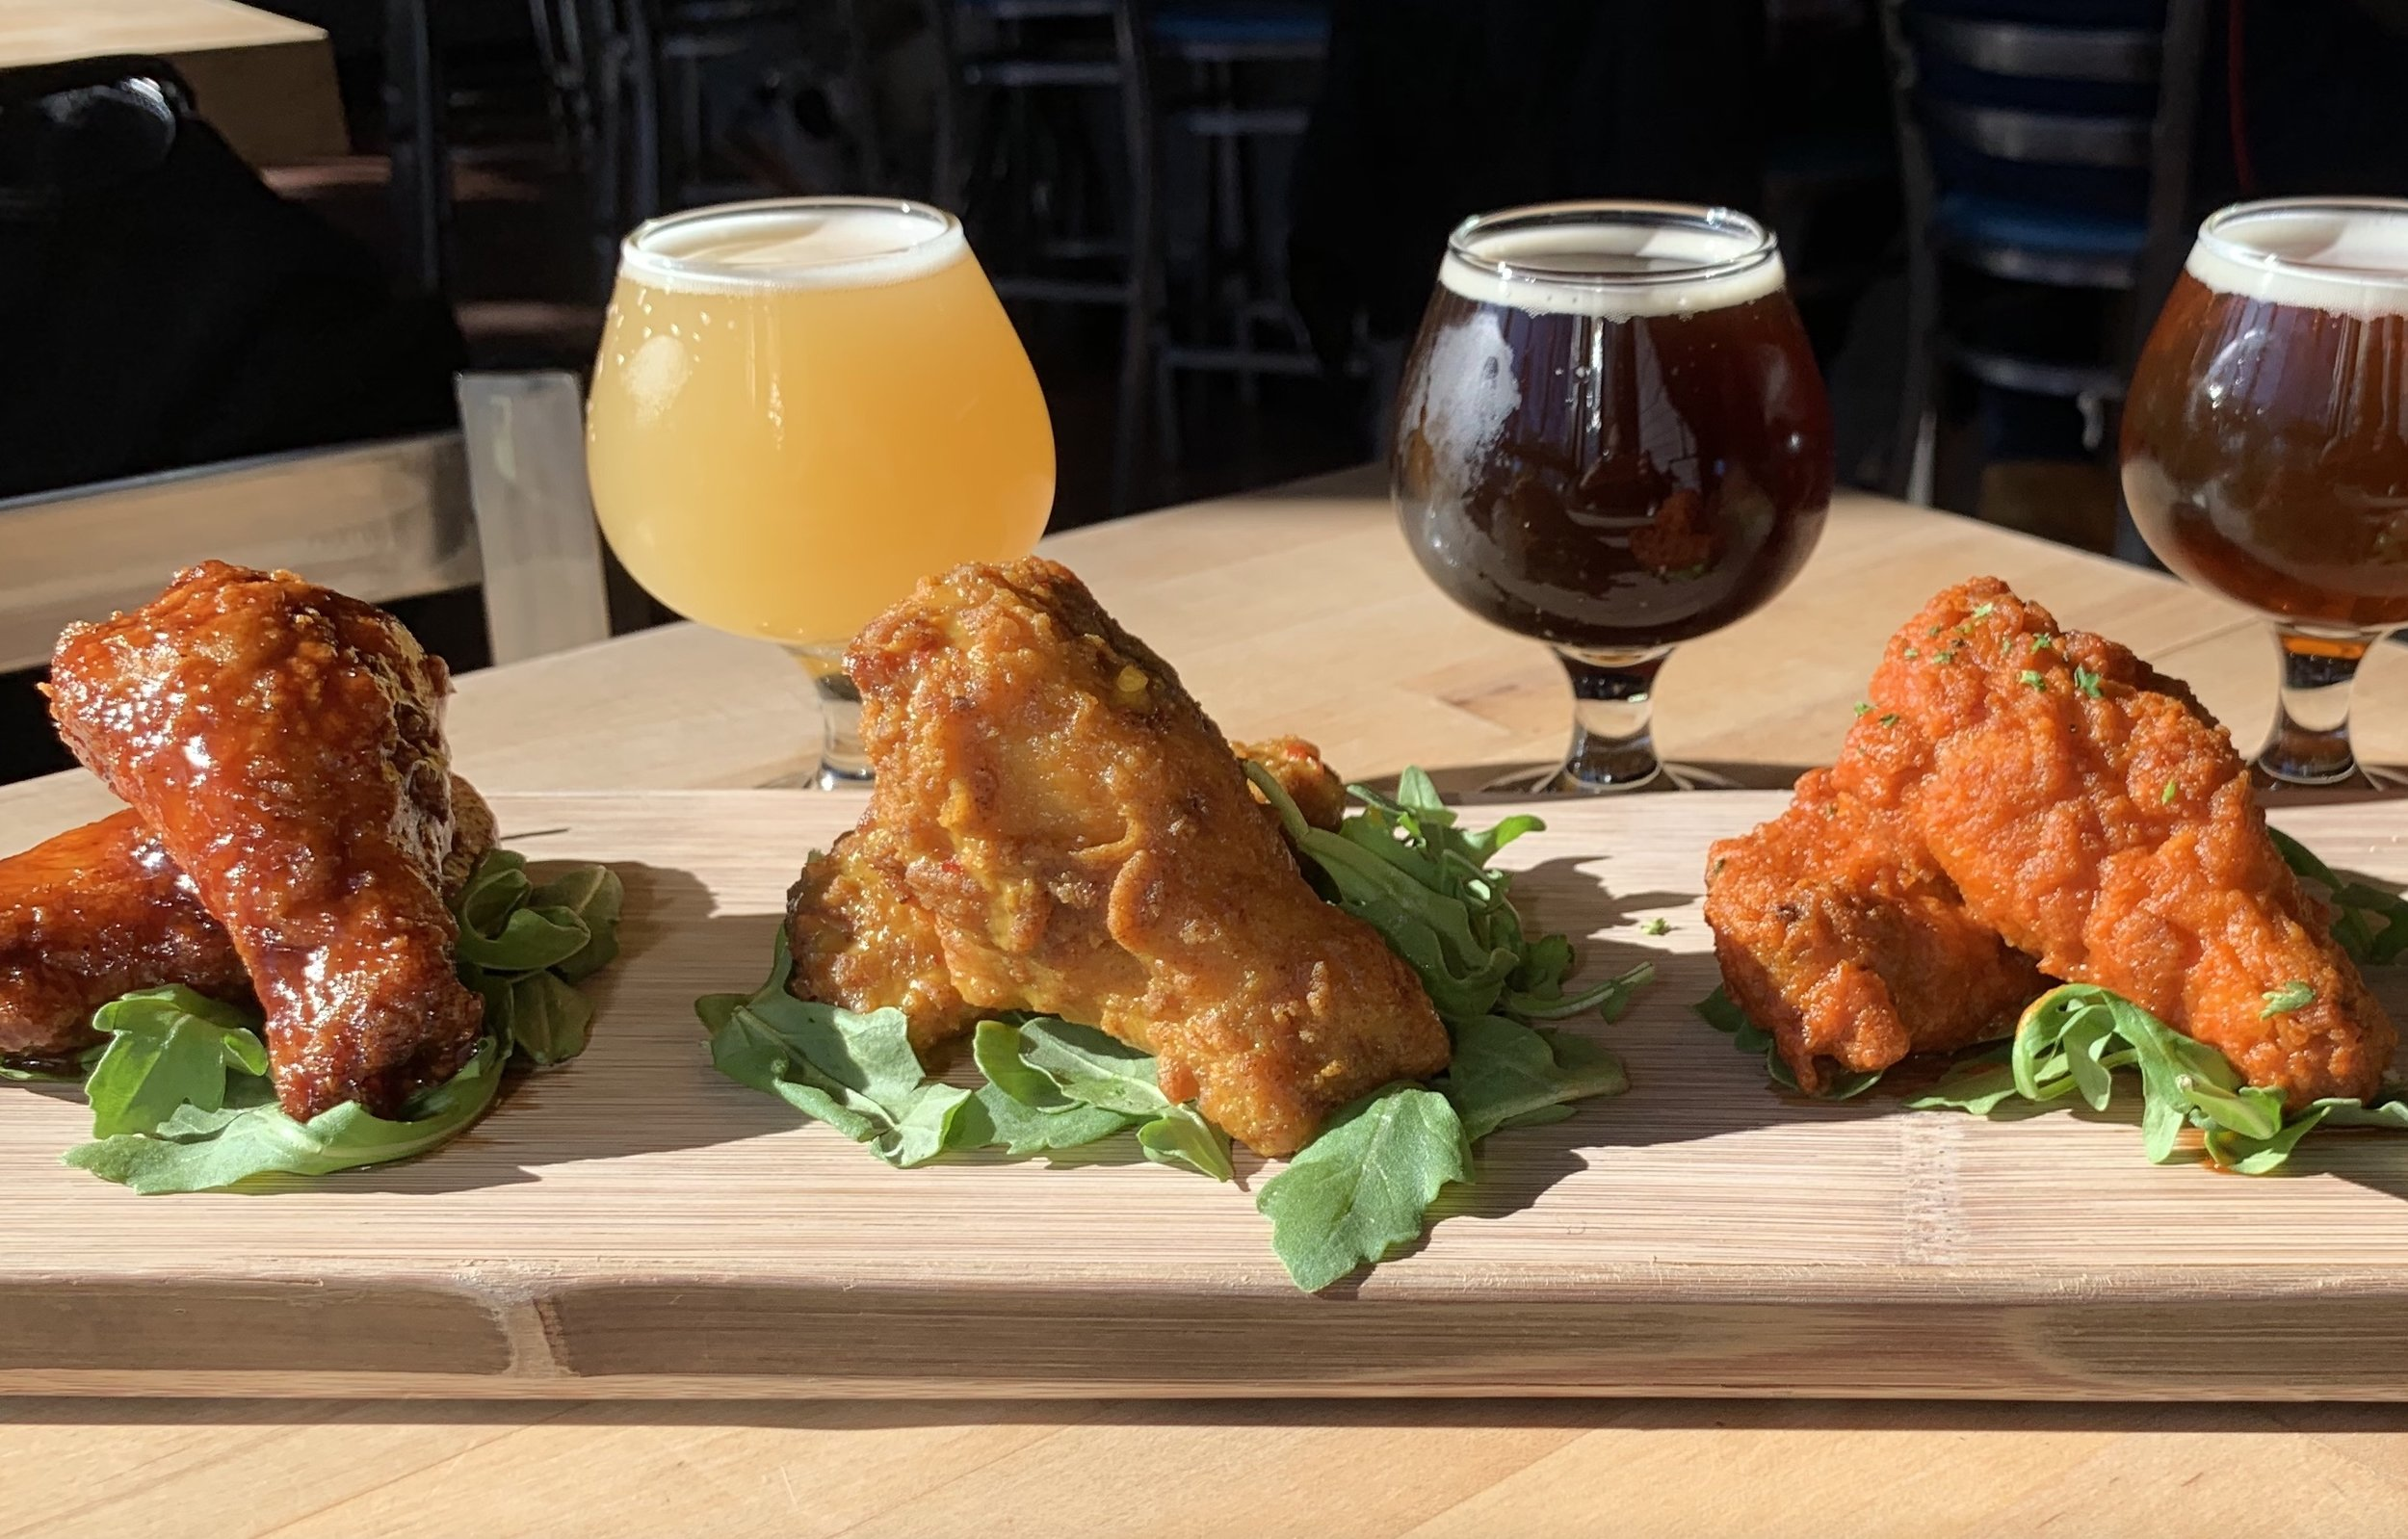 Wednesdays - 50¢ Wing NightSix rotating Slumbrew sauce flavors. Dine in only. 6PM 'till sell out. It's a thing. People love it.